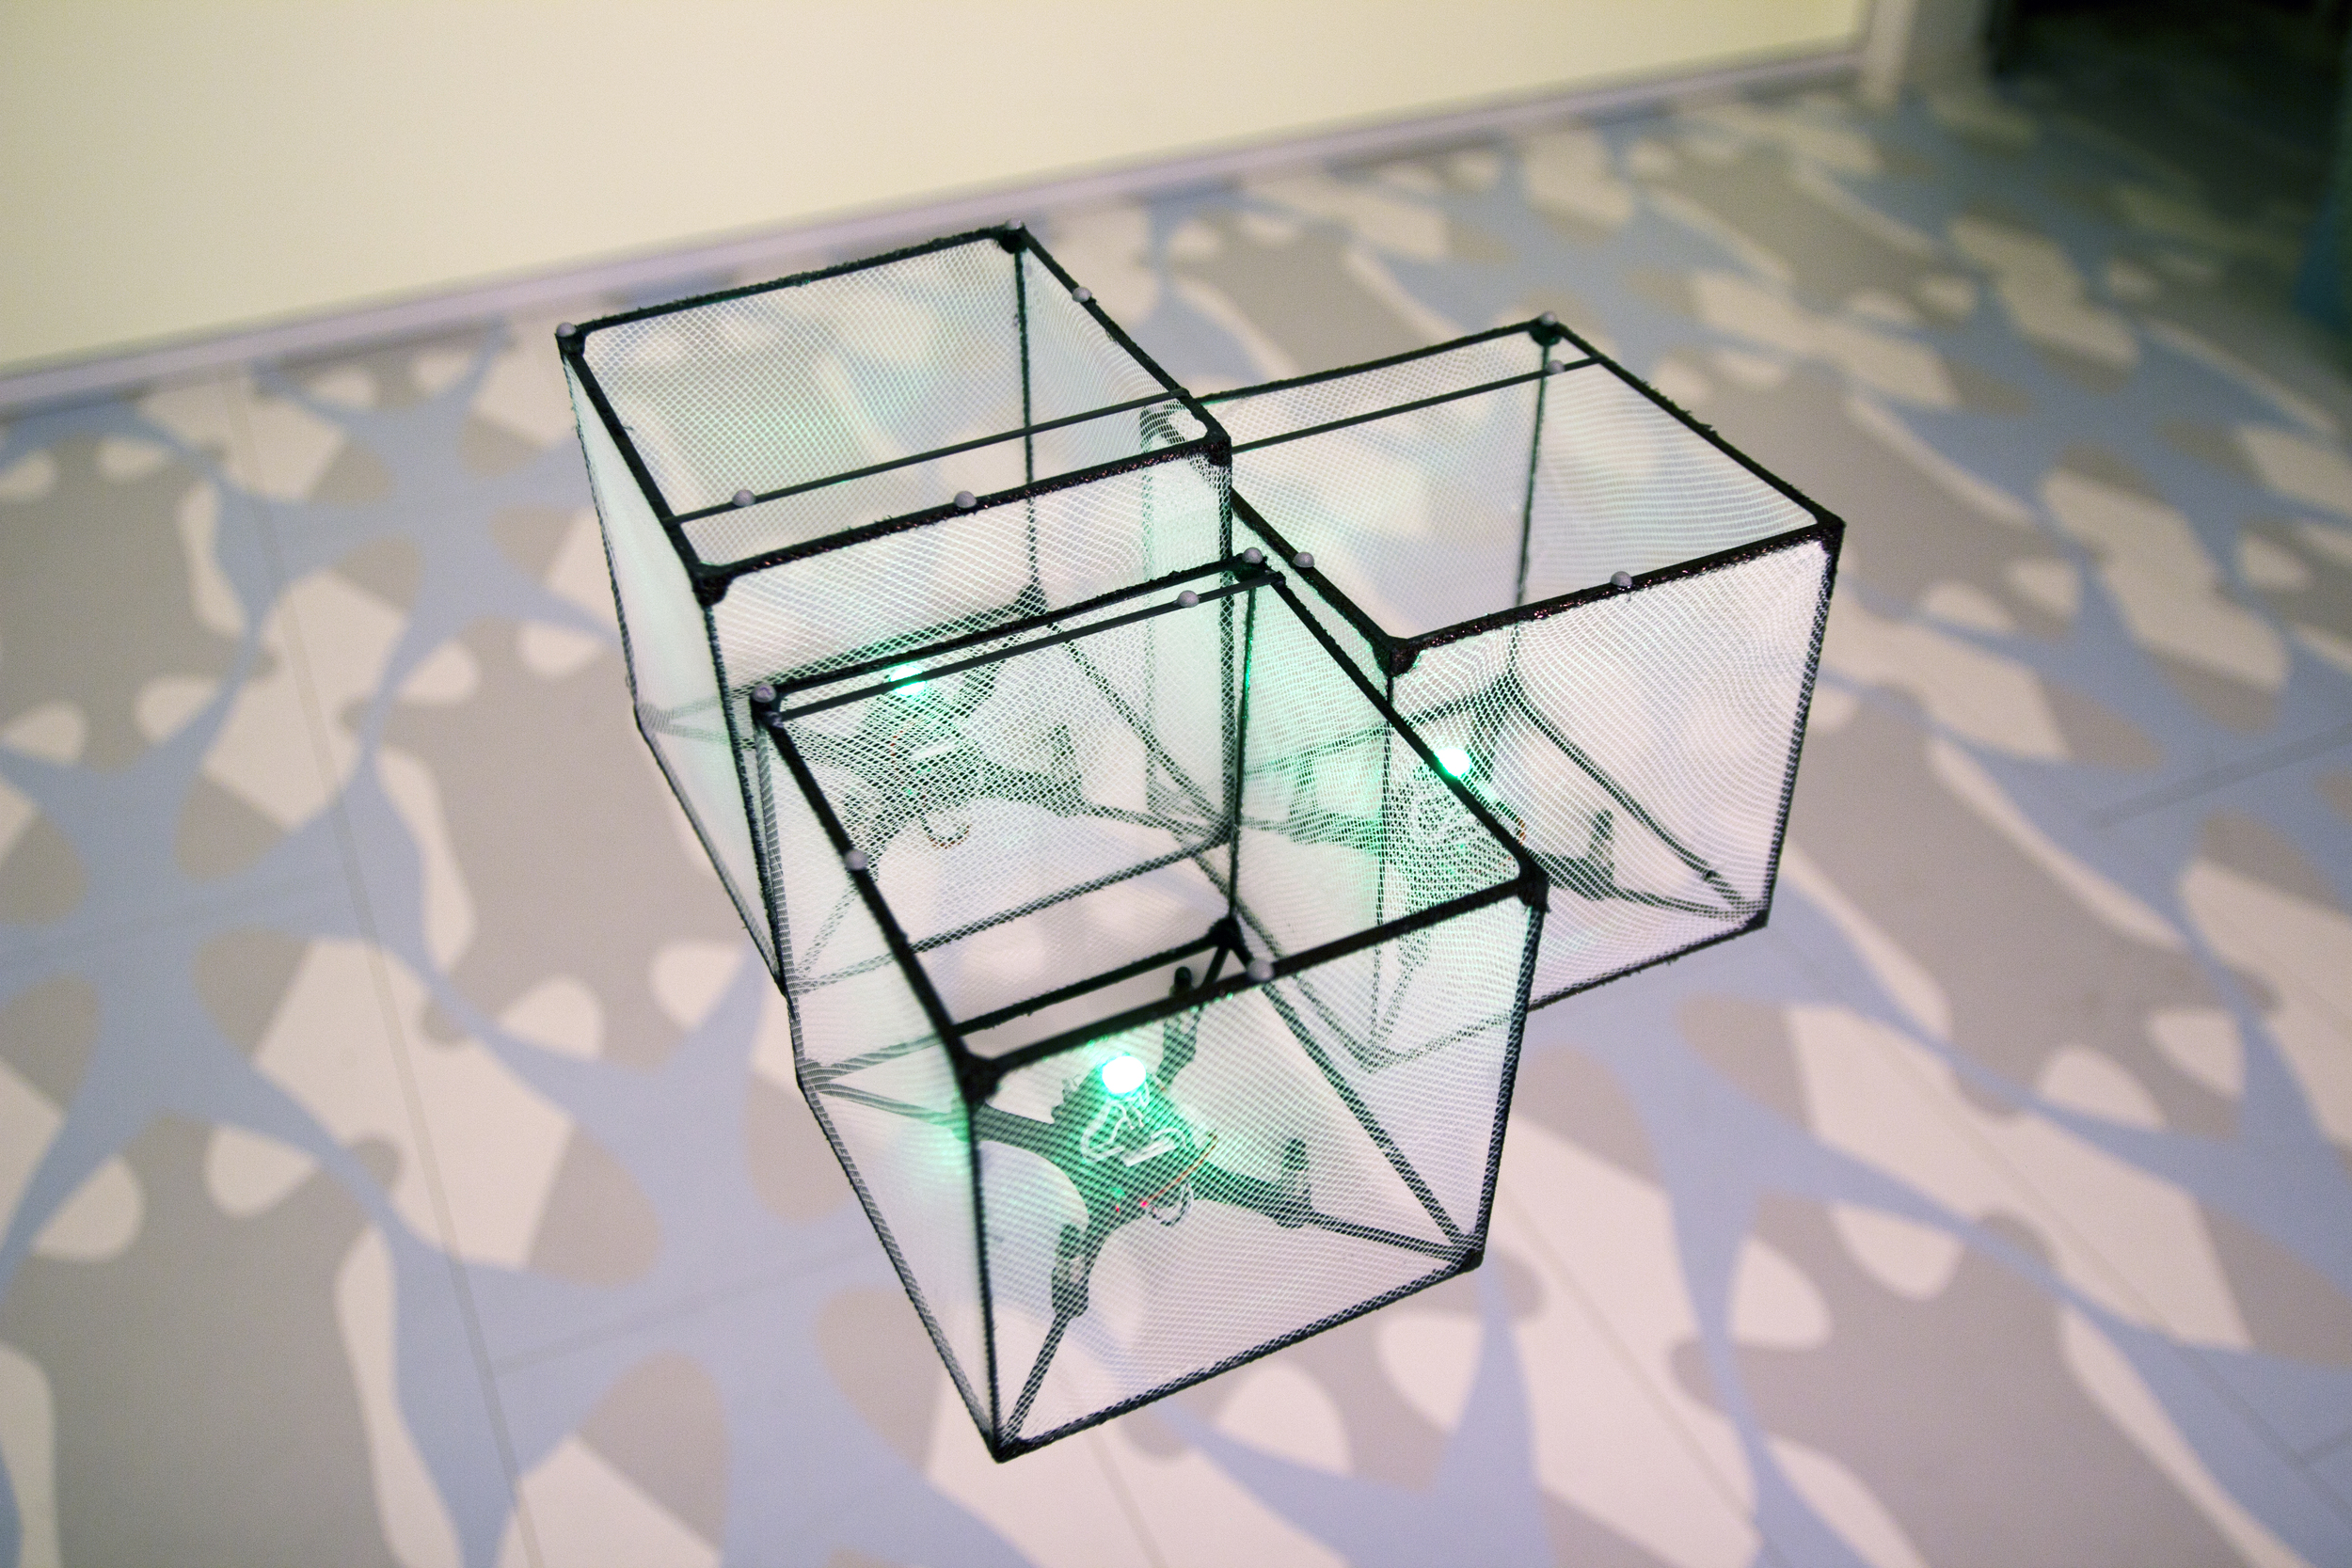 BitDrones (2015): ShapeDrones hover together to form a structure.